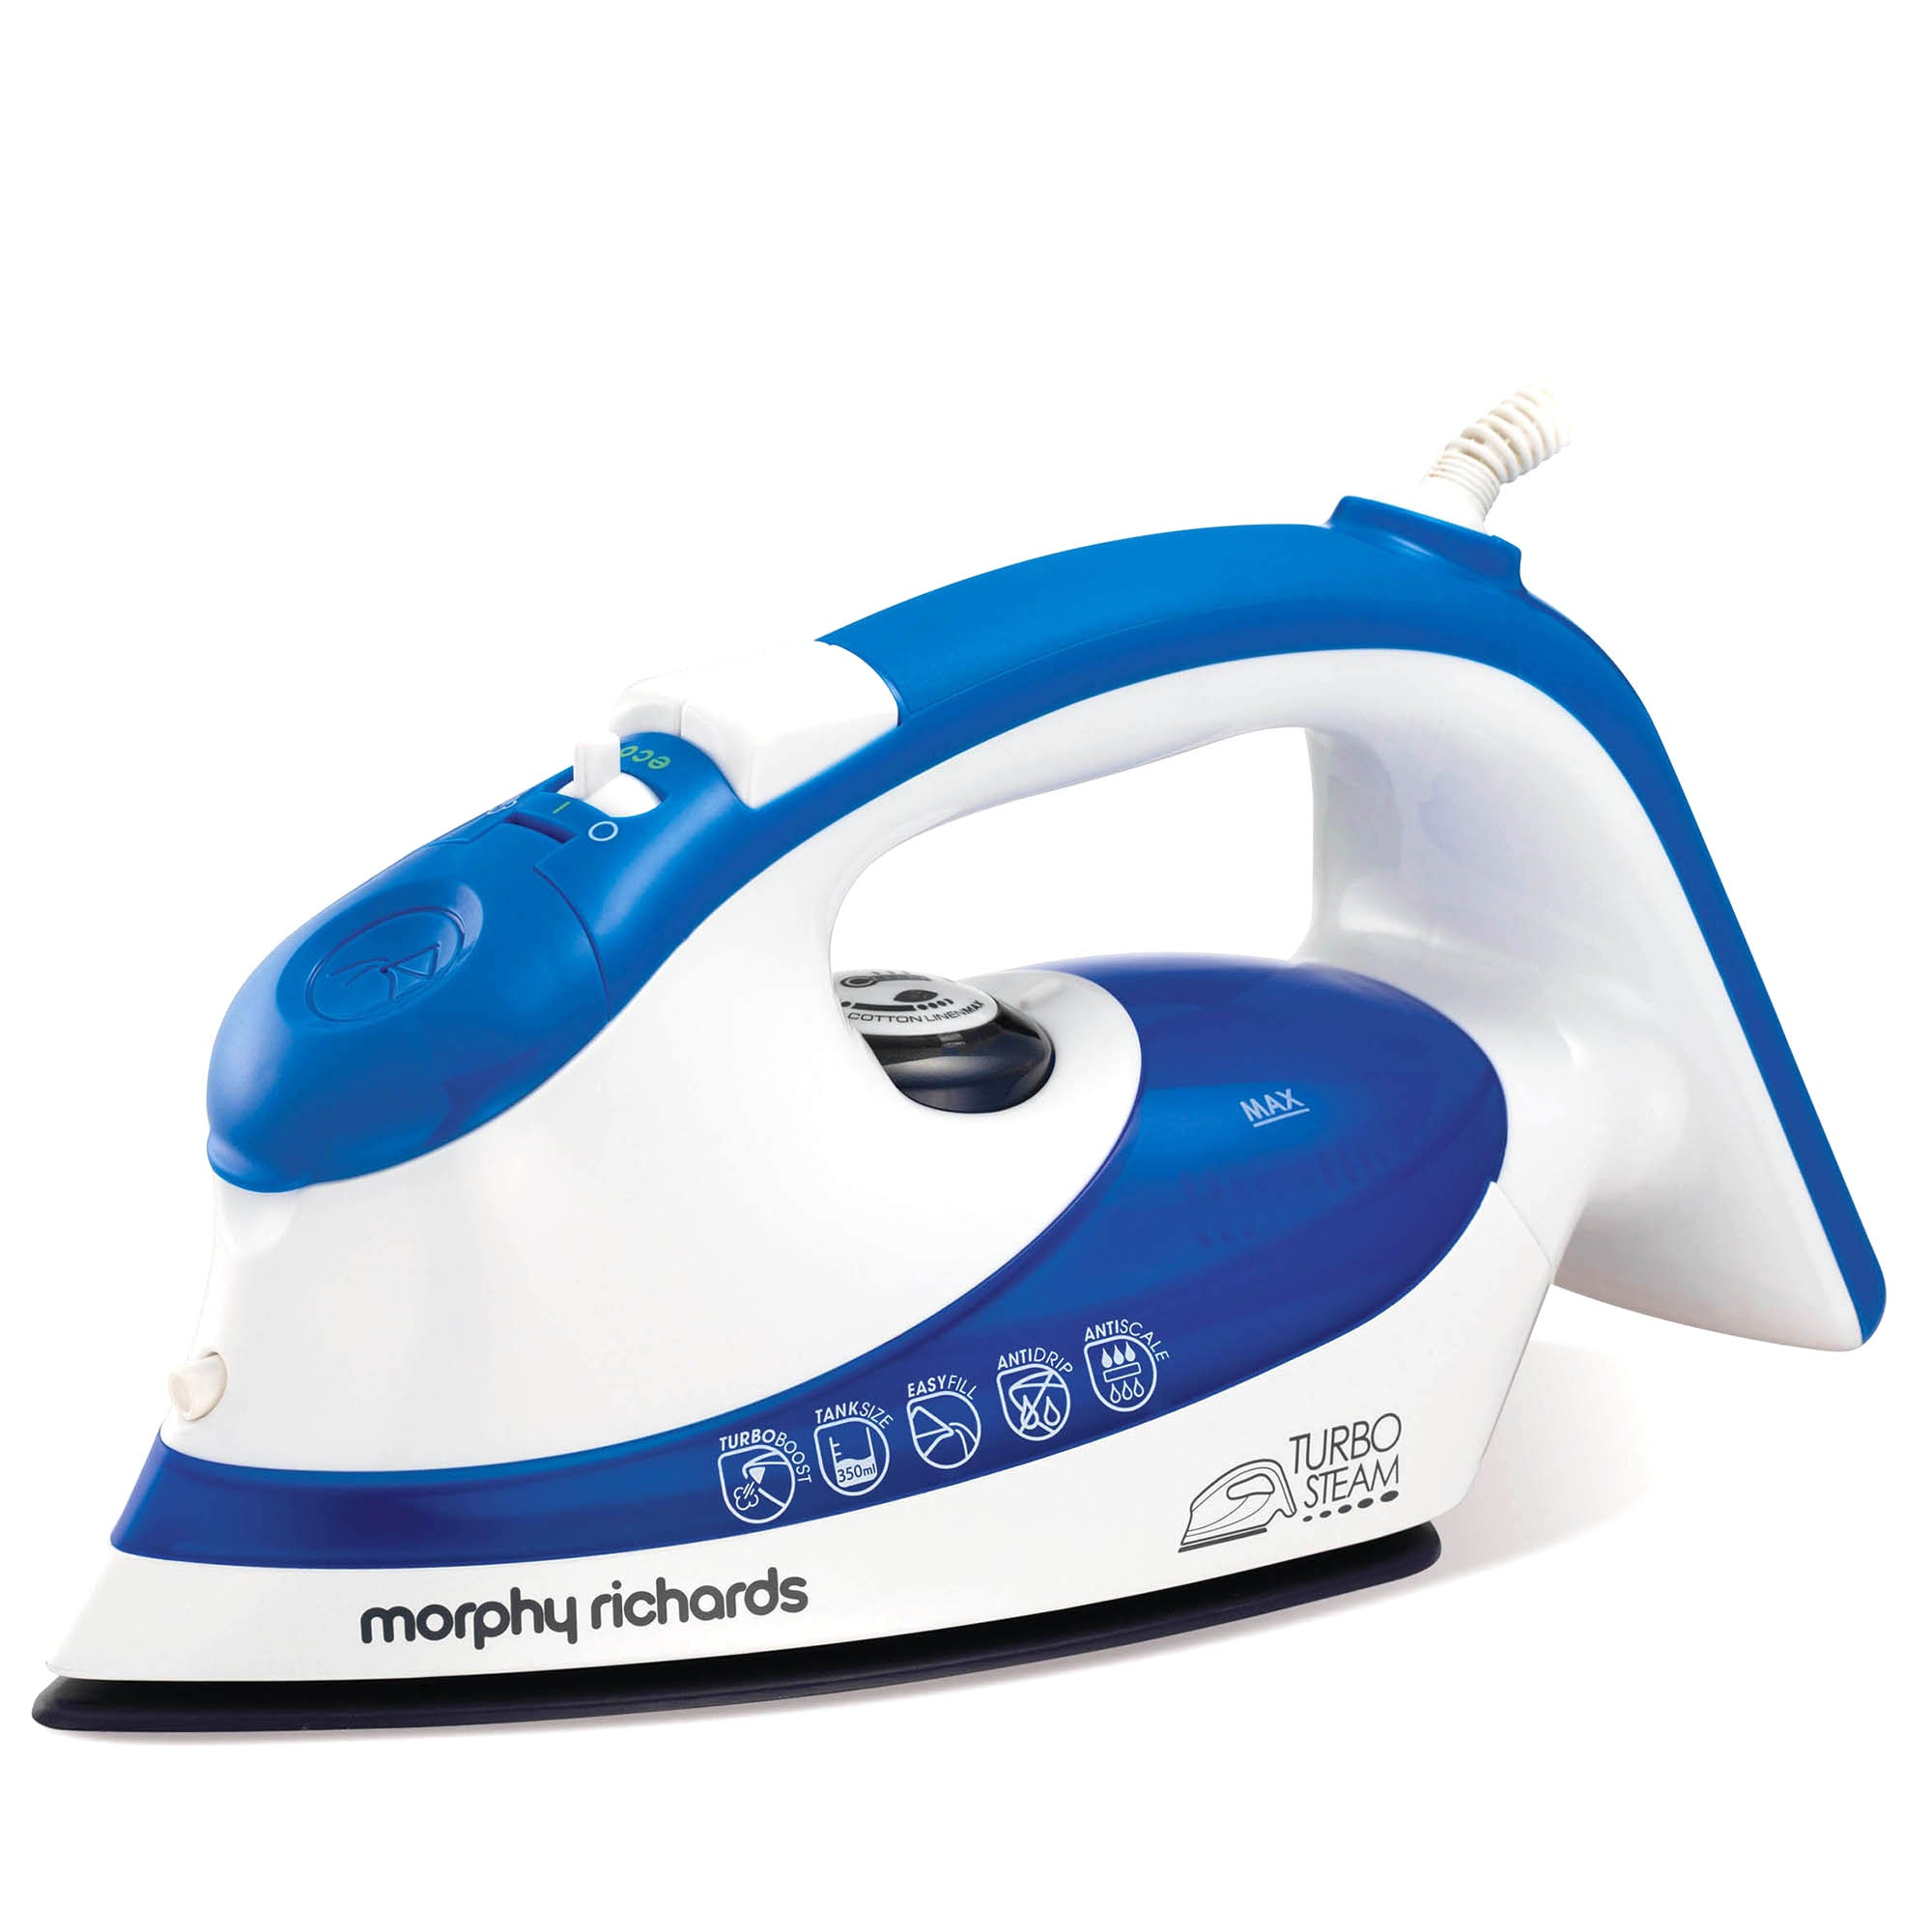 Morphy Richards 300601 2000w Turbosteam Blue Ionic Iron